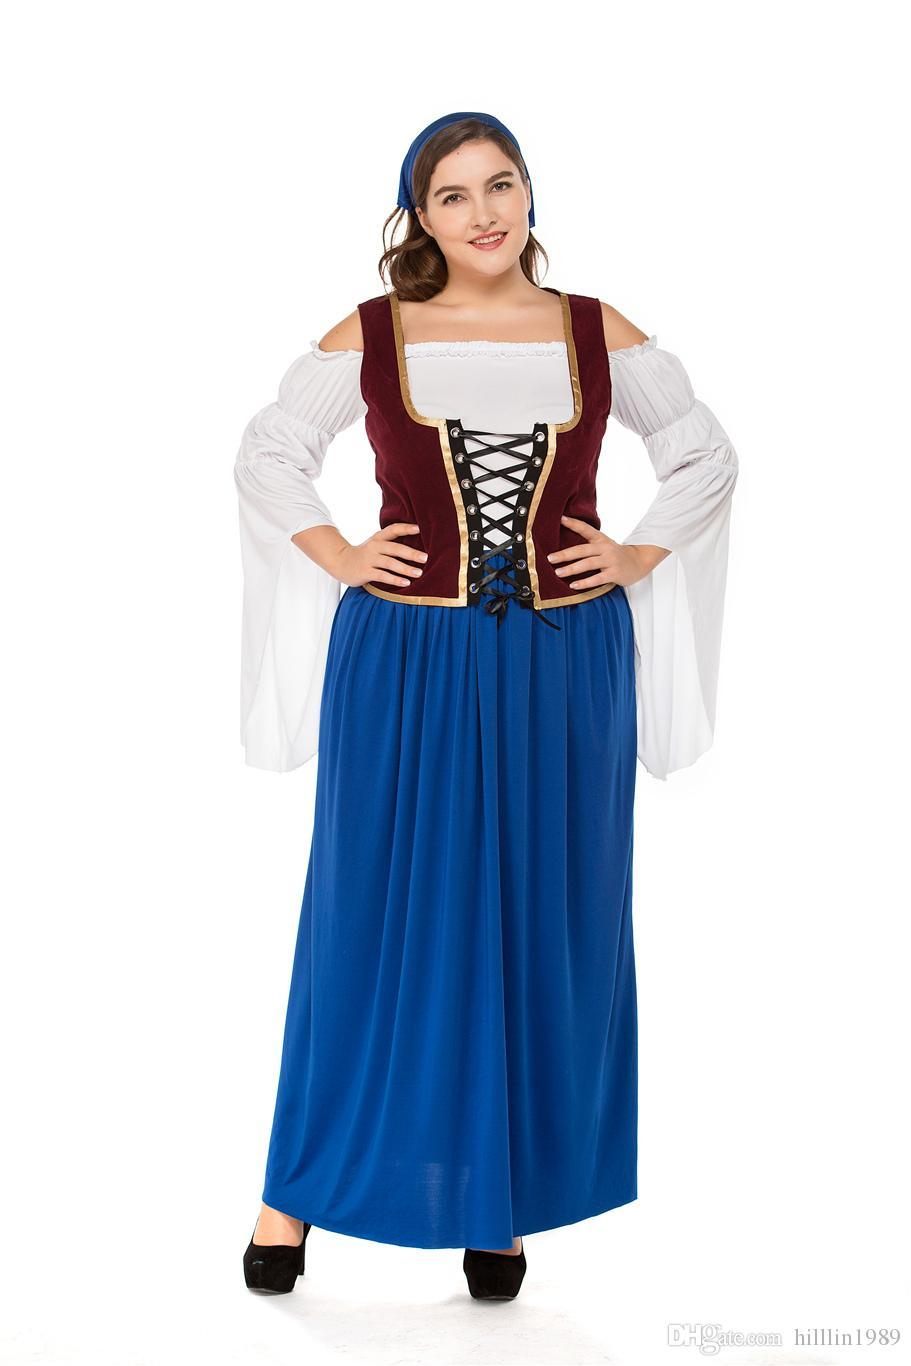 Plus Size German Women Oktoberfest Dress Mardi Gras Blue Cosplay Bavarian Waitress Costume Carnival Large Size Beer Girl Fancy Dress